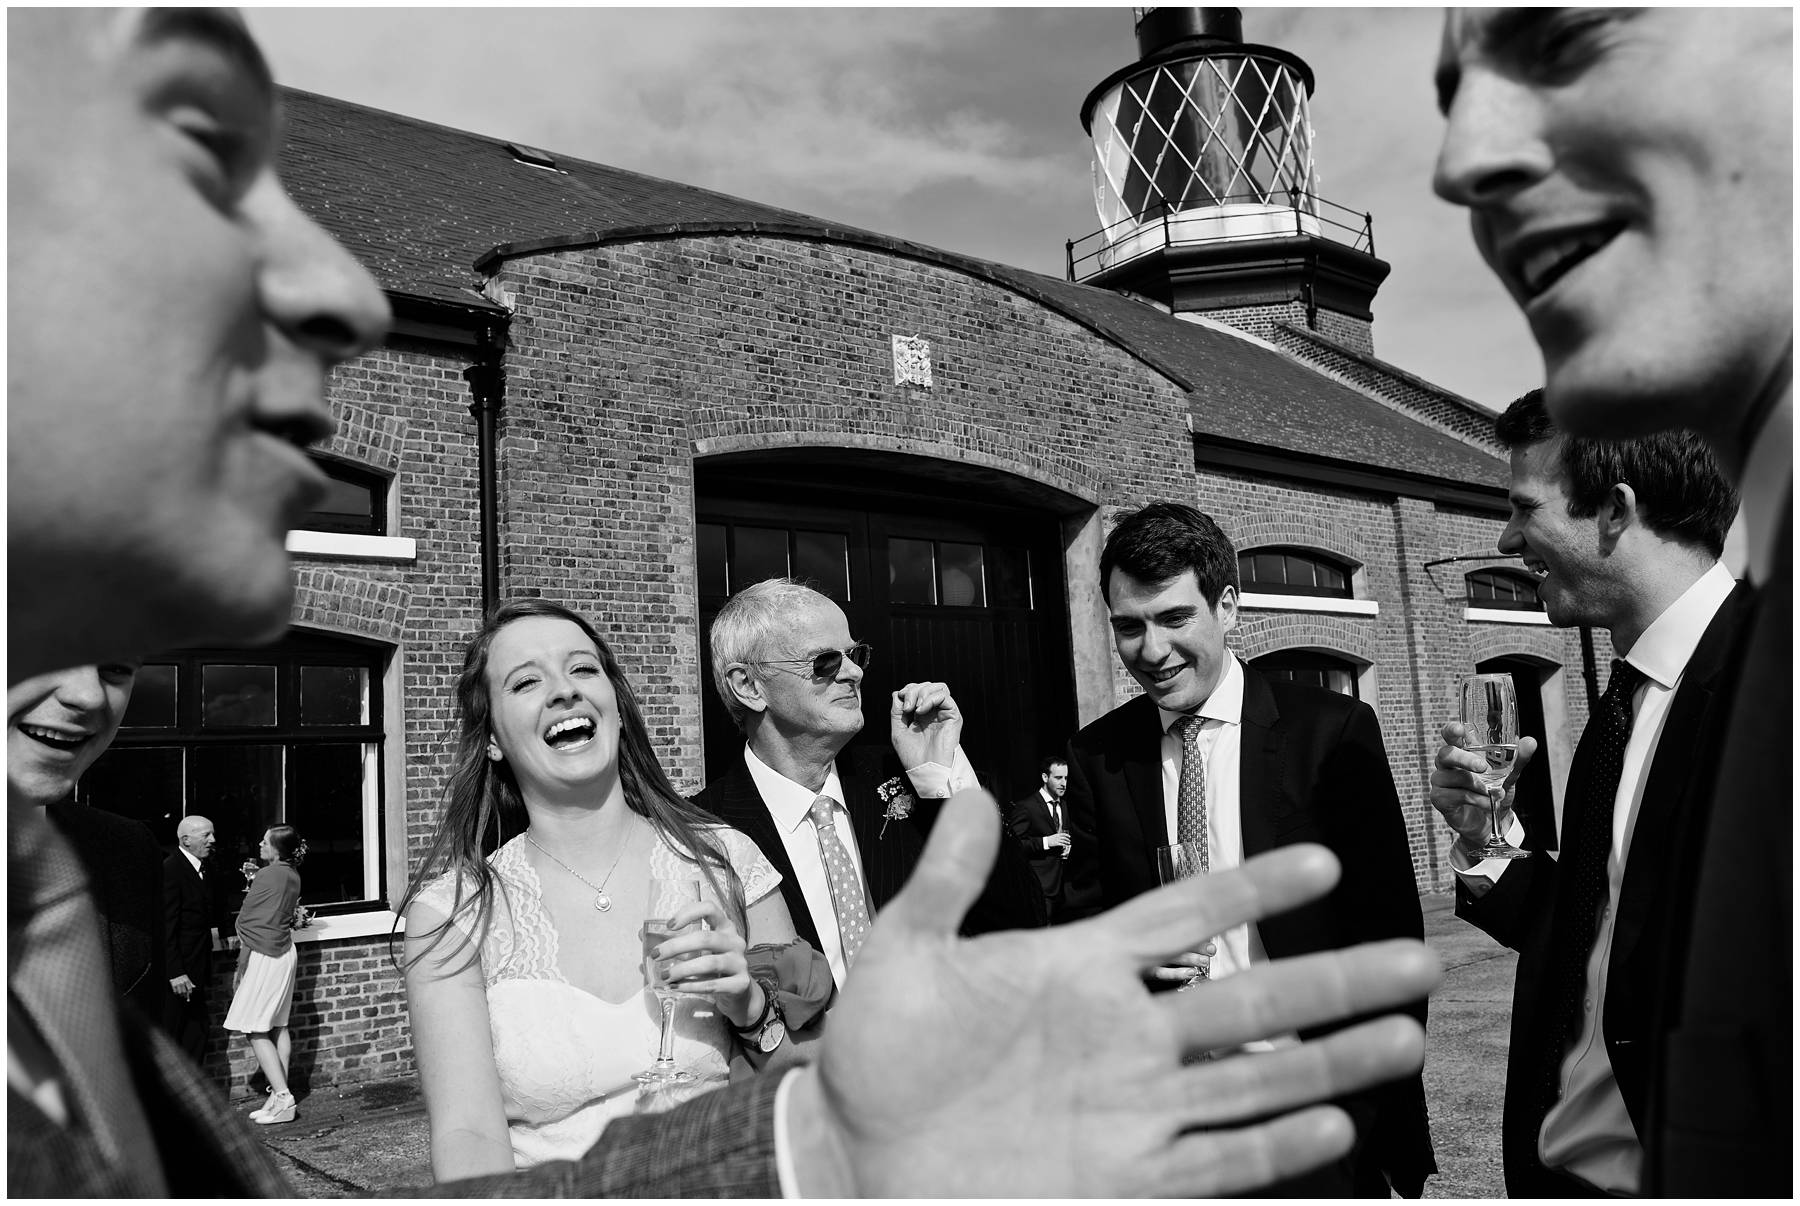 Wedding guests at Trinity Buoy Wharf